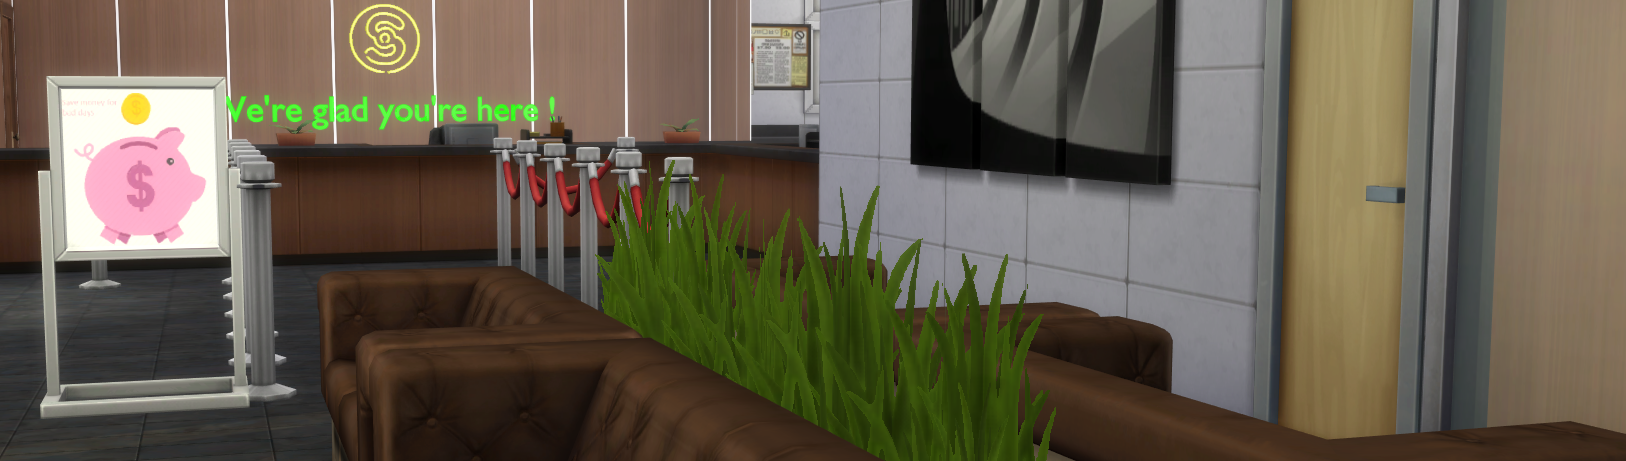 Add a Financial System to The Sims 4 with the SNBank Mod | SimsVIP